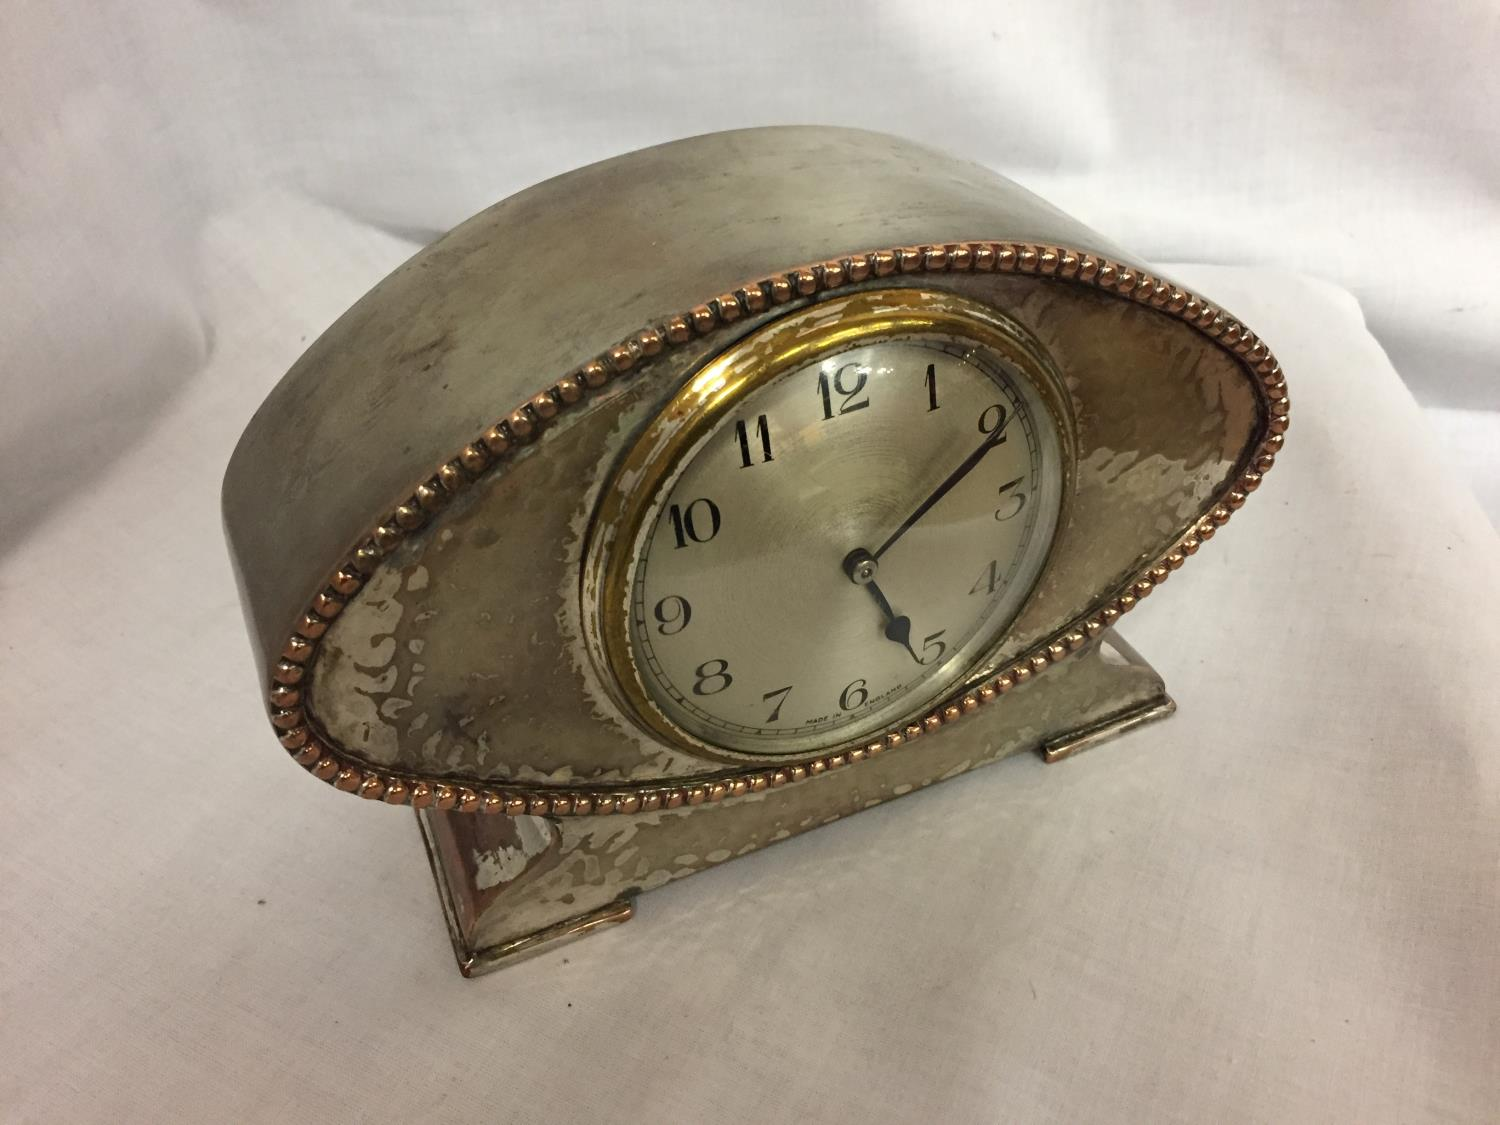 A DECO STYLE WHITE METAL MANTLE CLOCK - Image 2 of 3